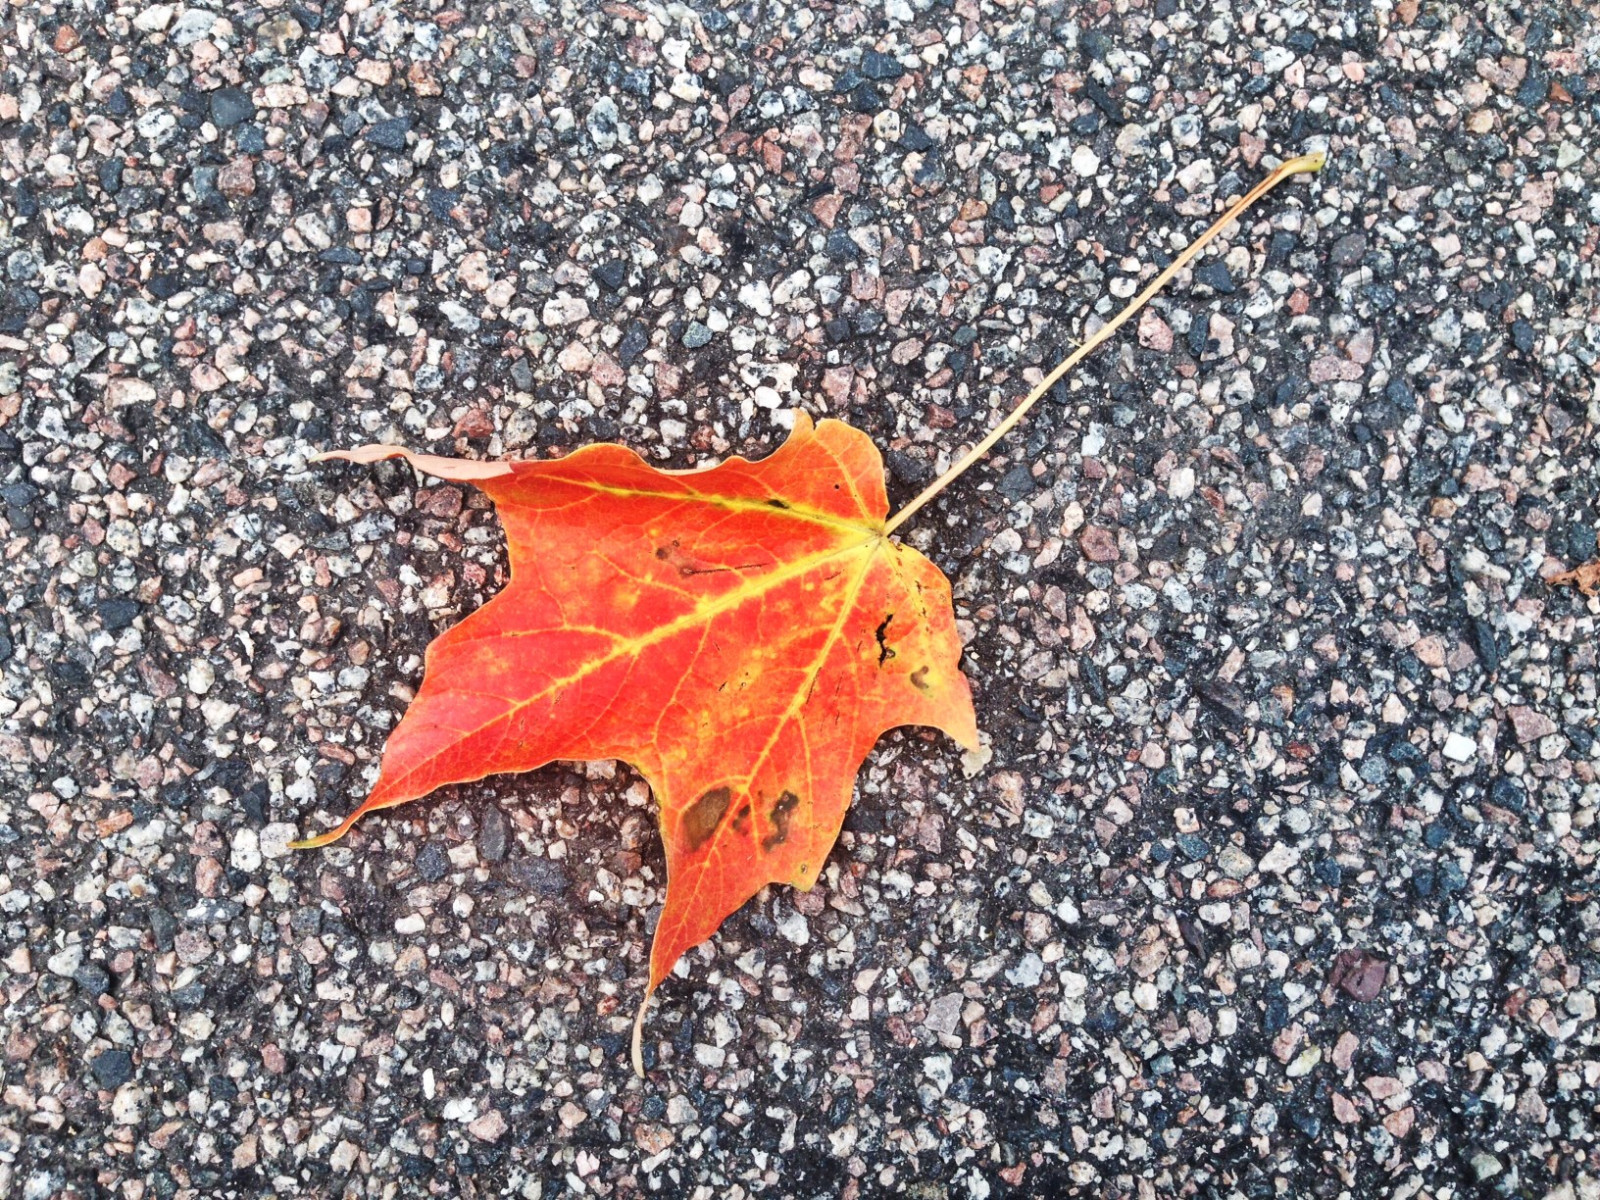 A brilliant orange and red leaf sitting on a tarmac surface